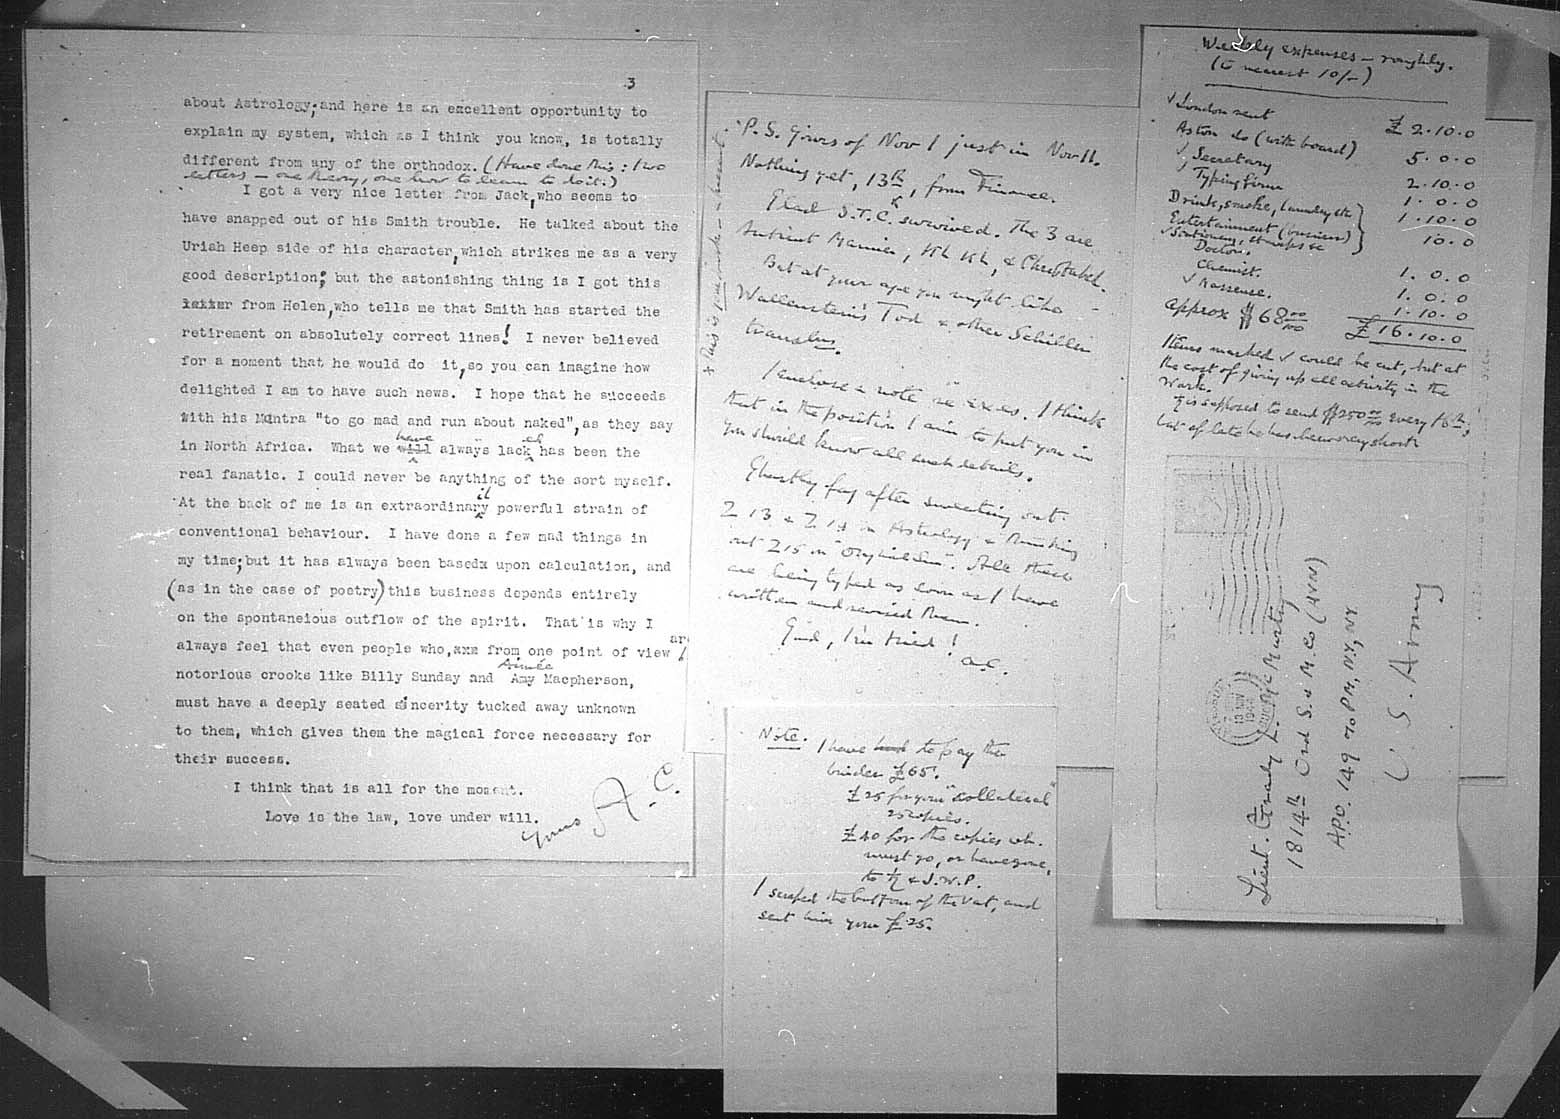 (11/13/1944) Aleister Crowley to Grady McMurtry #3